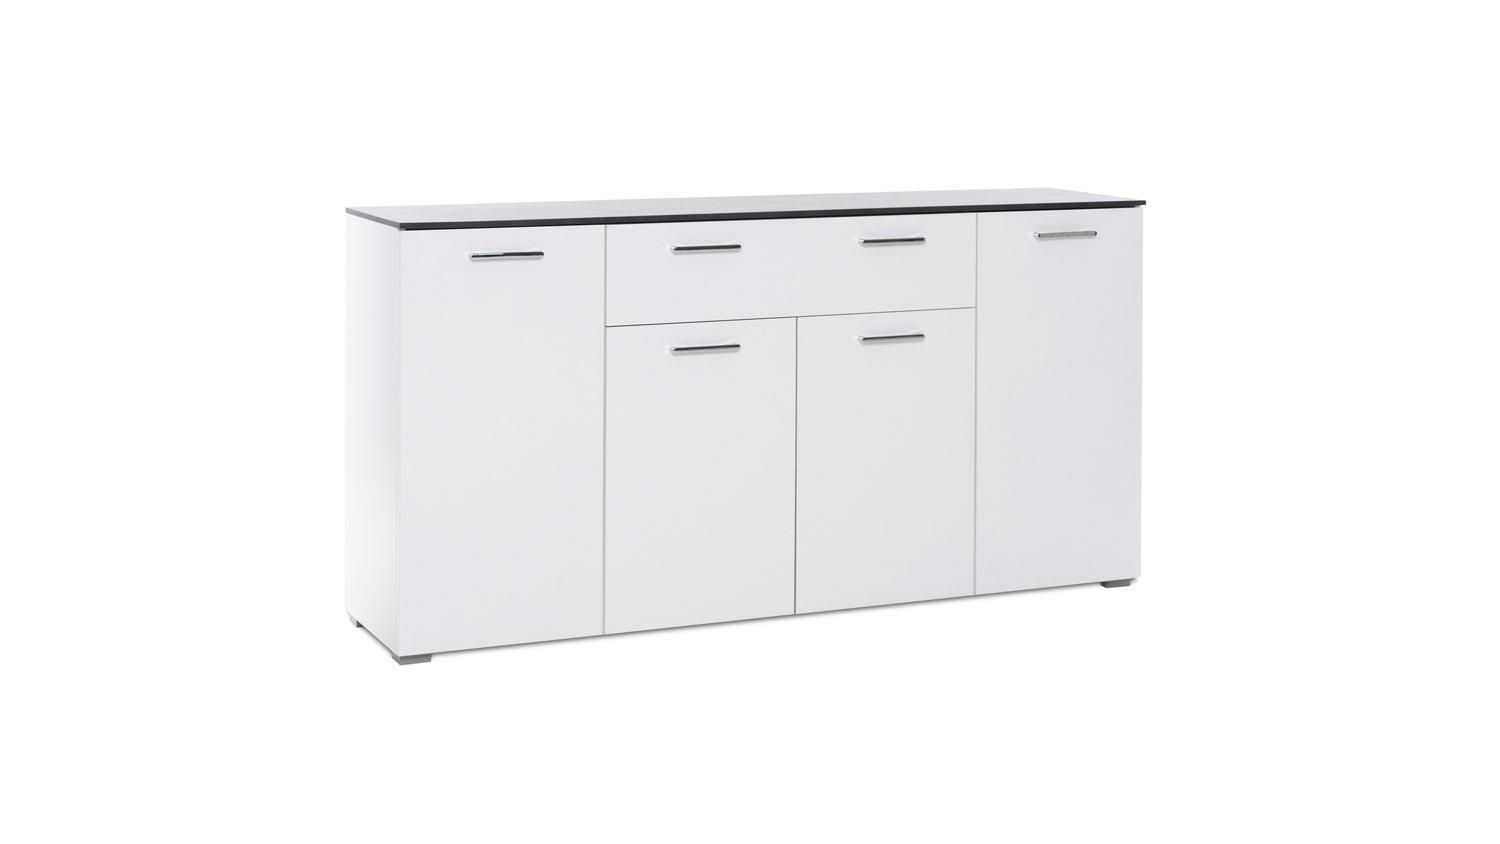 kommode magic sideboard anrichte in wei hochglanz beton dunkel 160 cm. Black Bedroom Furniture Sets. Home Design Ideas